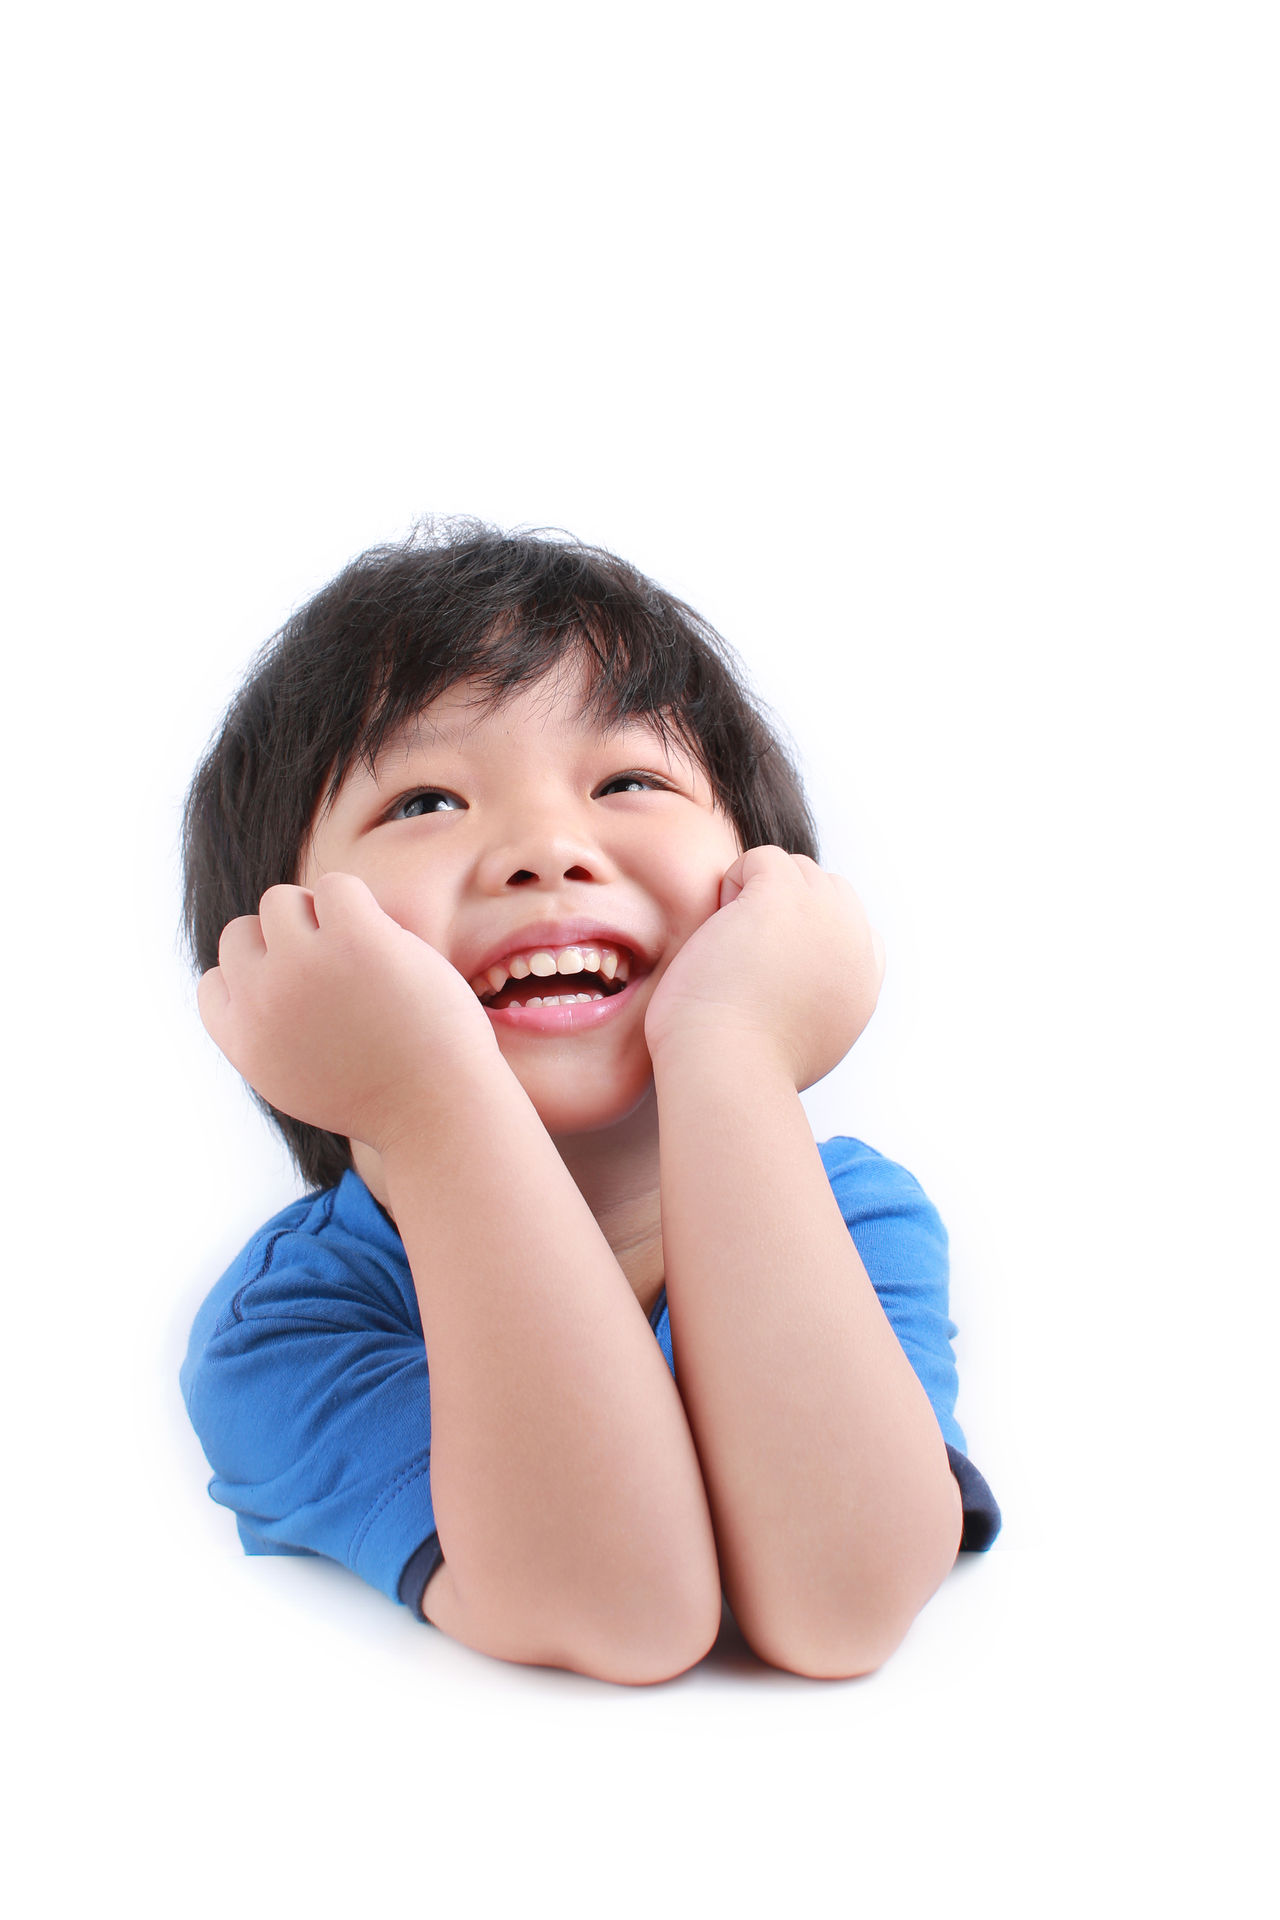 Childhood Asian  Boy Cheerful Child Childhood Children Only Close-up Conceptual Cute Happiness Human Body Part One Person People Portrait Smiling Studio Shot Thinking White Background